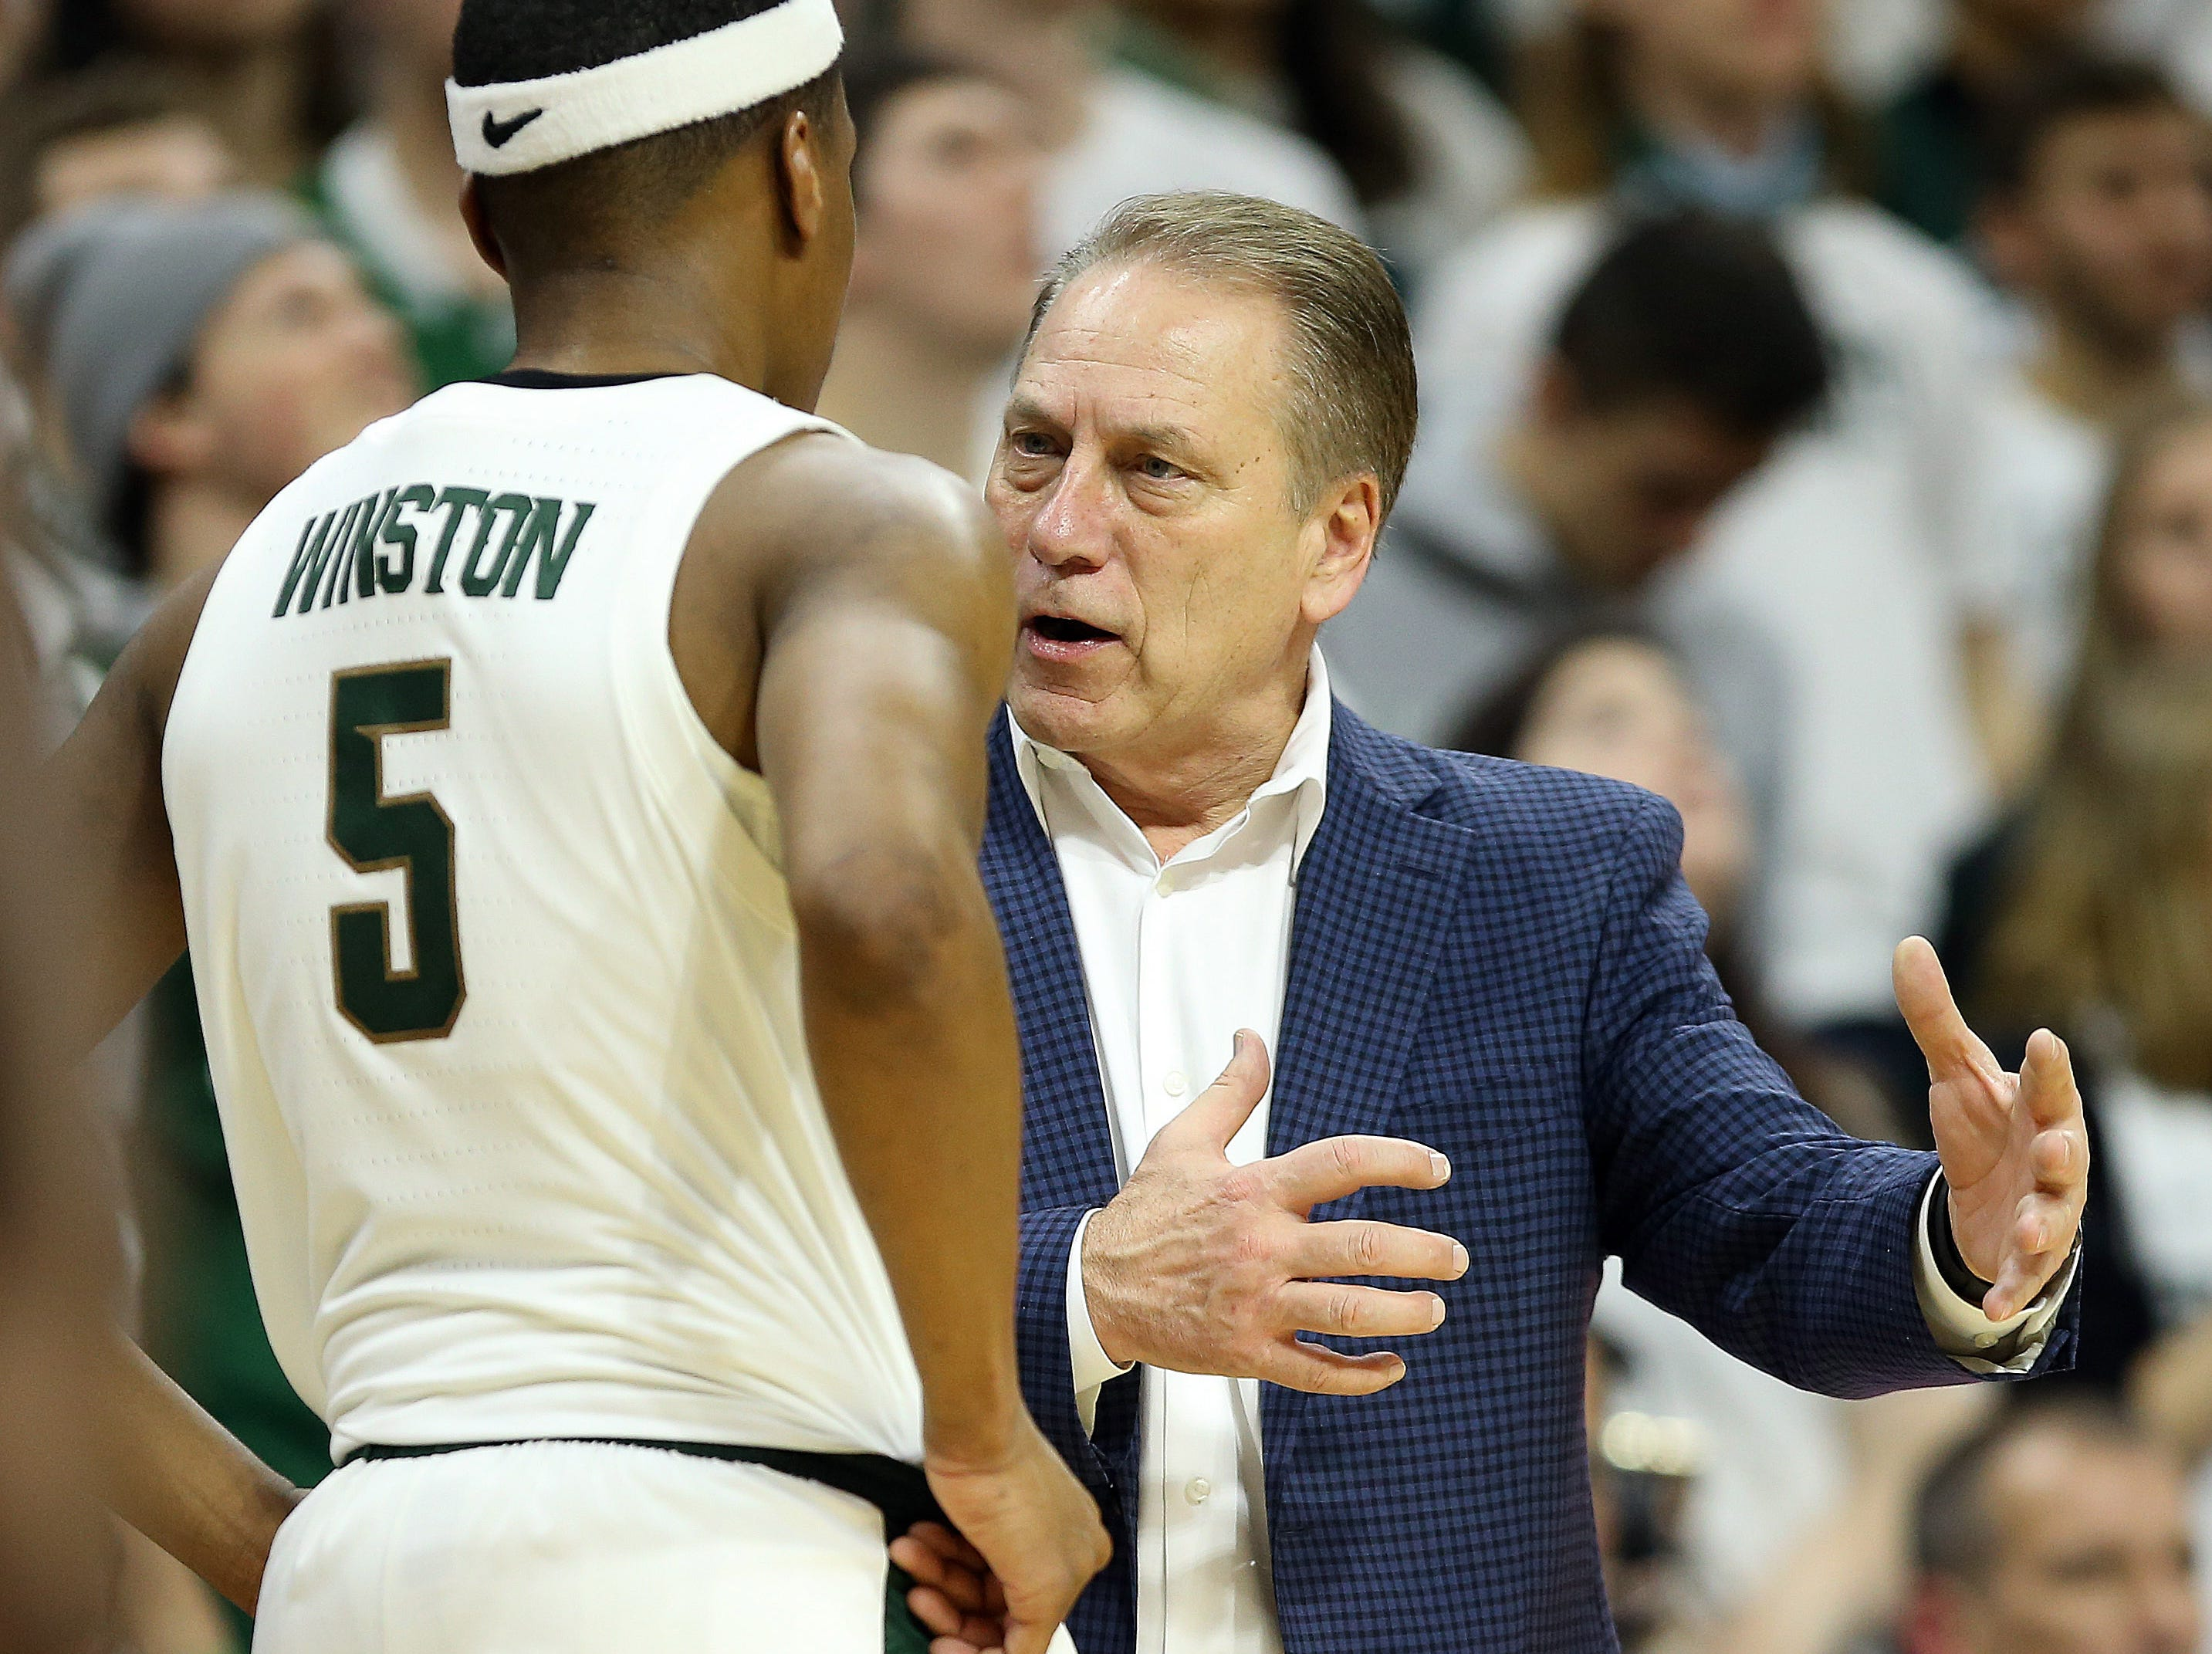 Feb 20, 2019; East Lansing, MI, USA; Michigan State Spartans head coach Tom Izzo talks to Michigan State Spartans guard Cassius Winston (5) during the second half of a game at the Breslin Center. Mandatory Credit: Mike Carter-USA TODAY Sports